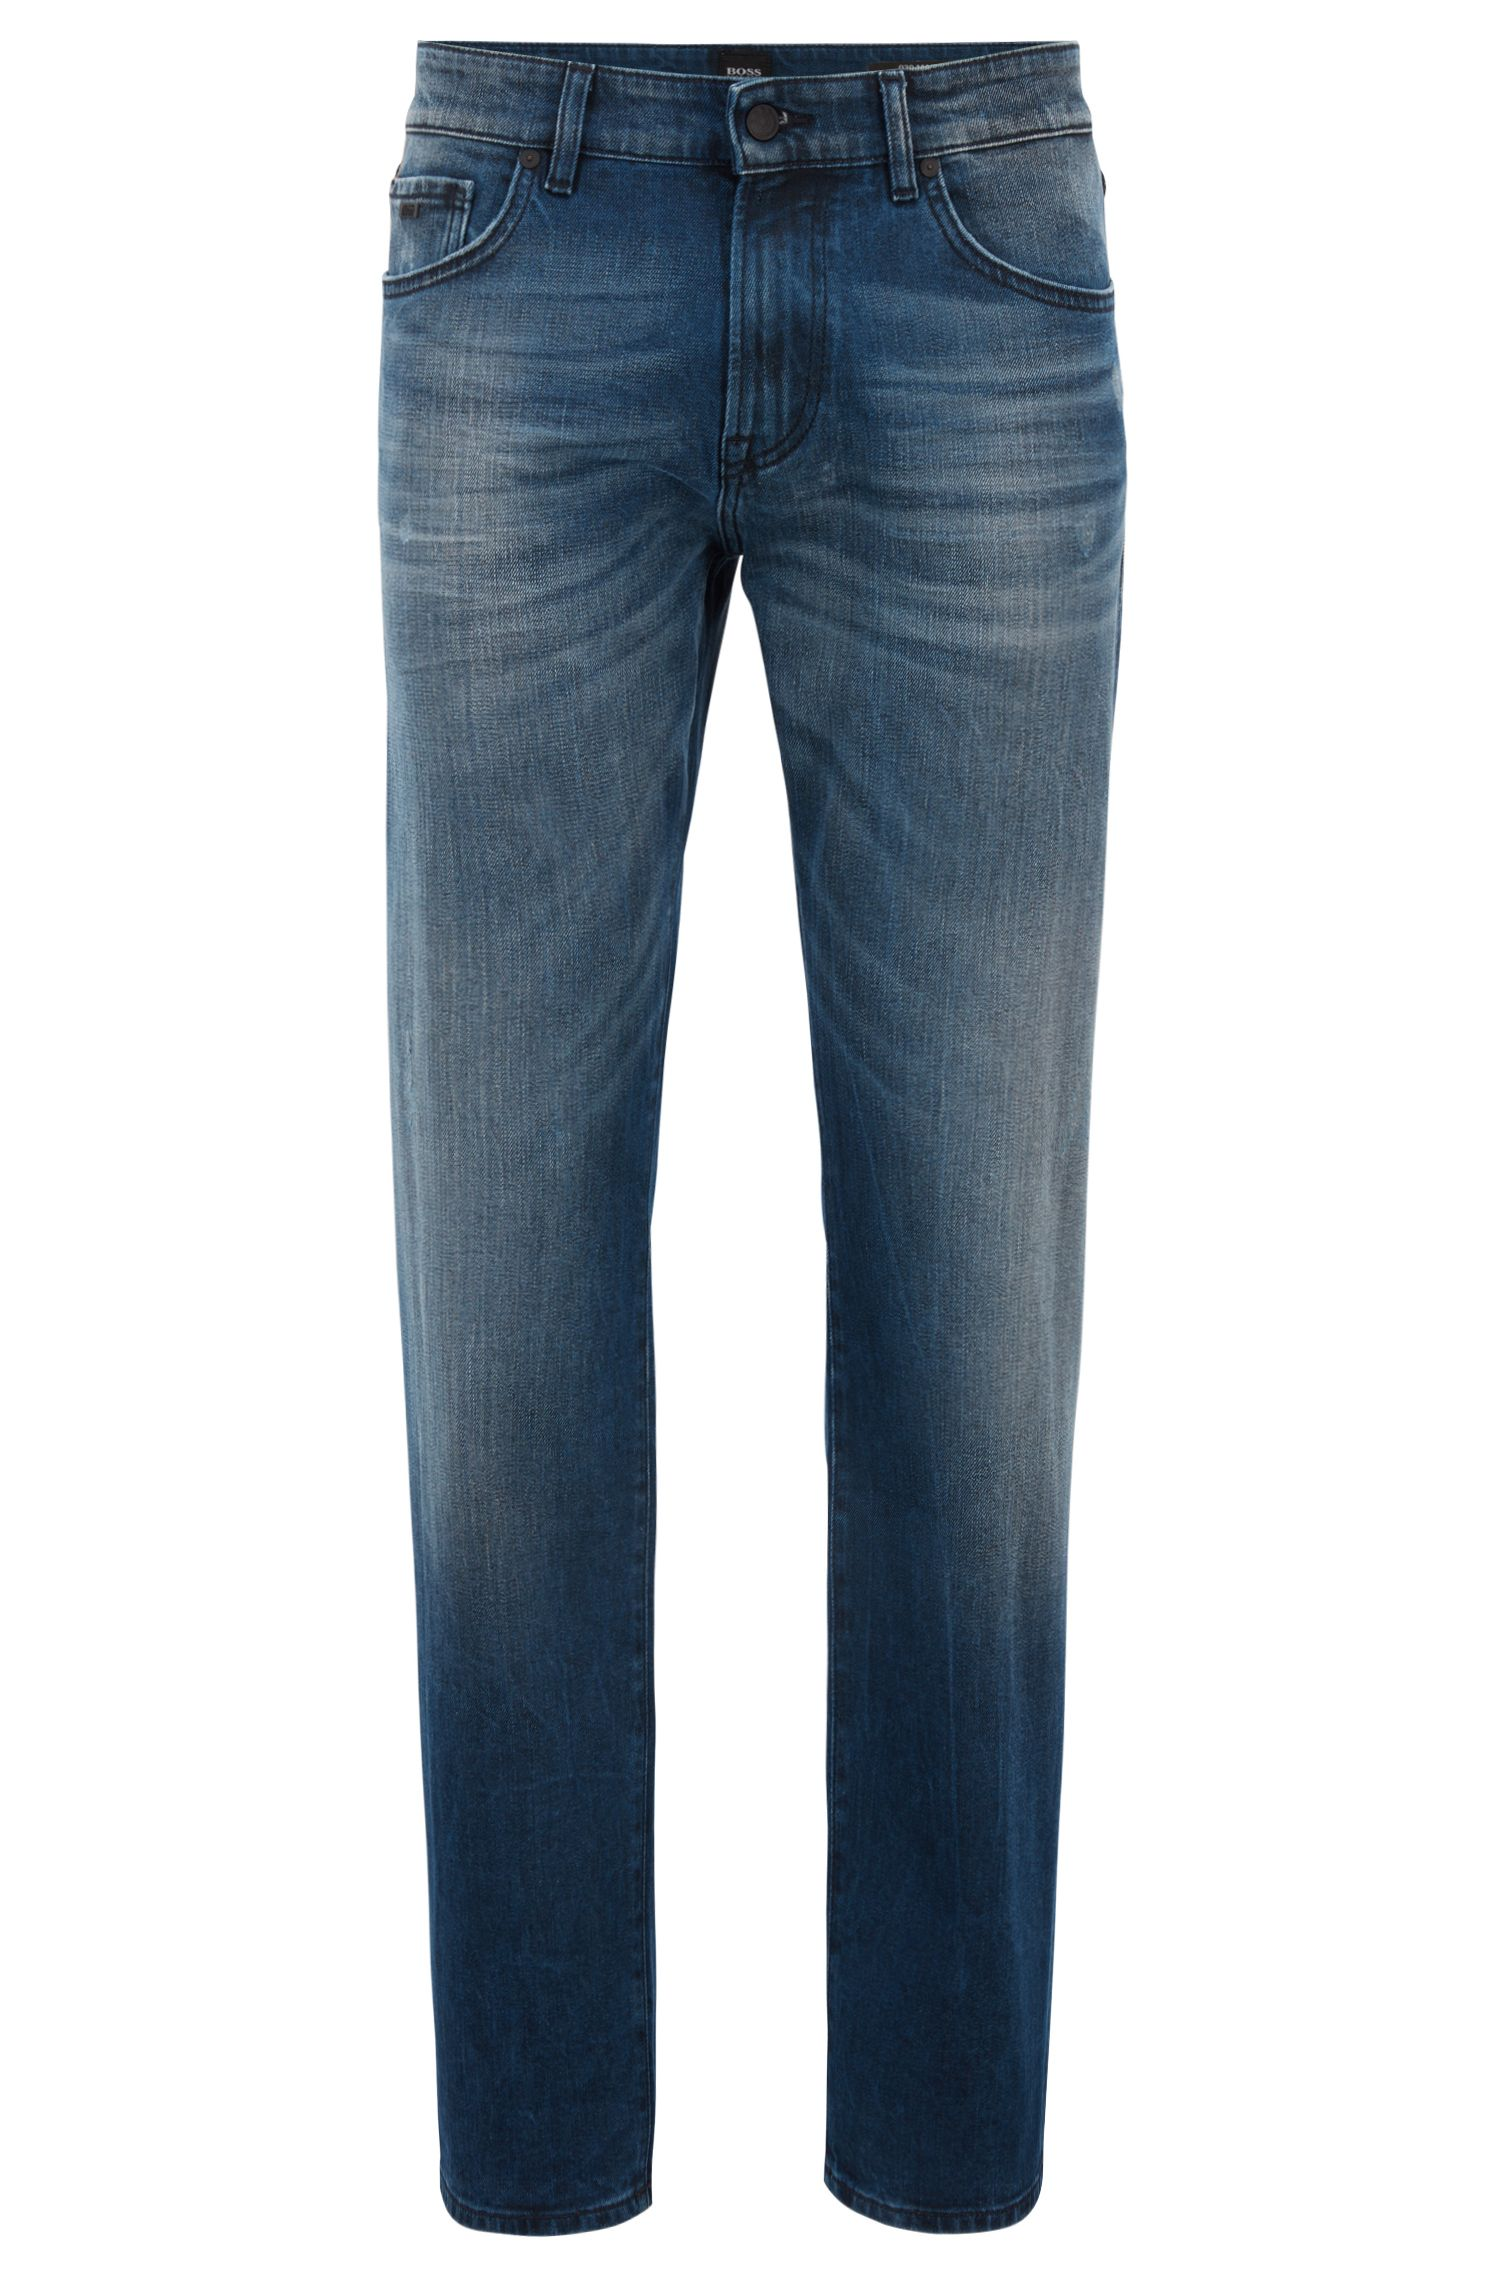 Jean Regular Fit bleu moyen en denim stretch enduit, Bleu